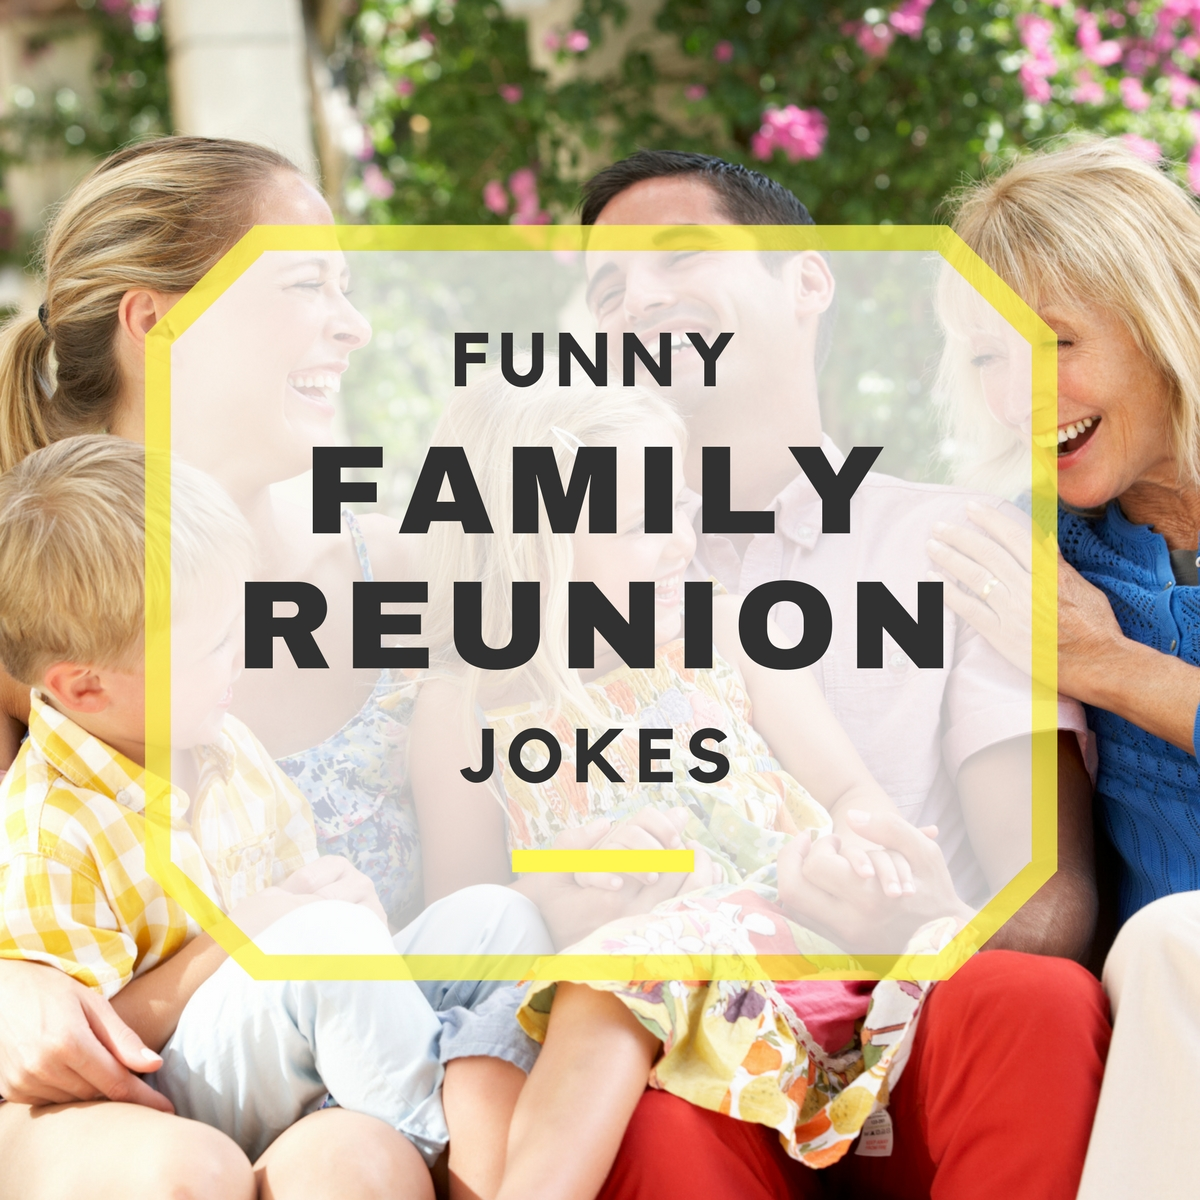 Funny Family Jokes